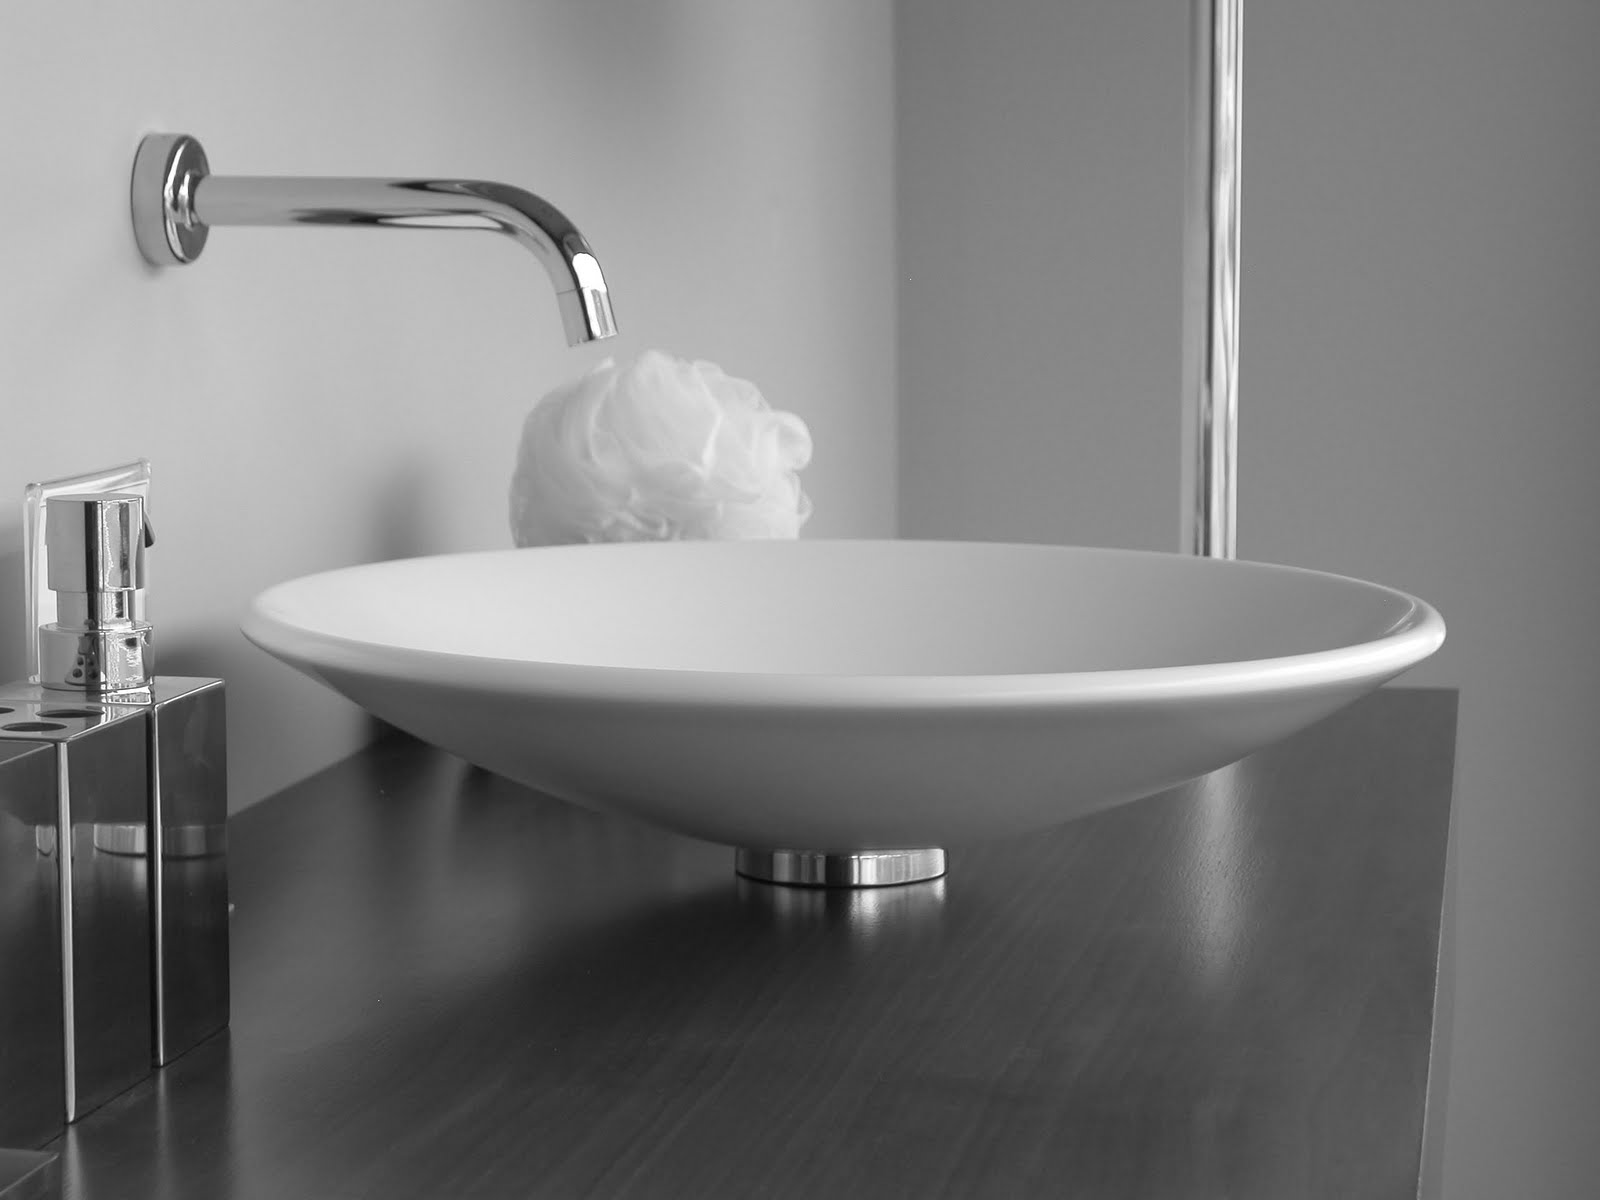 Minosa: Bathroom Washbasins